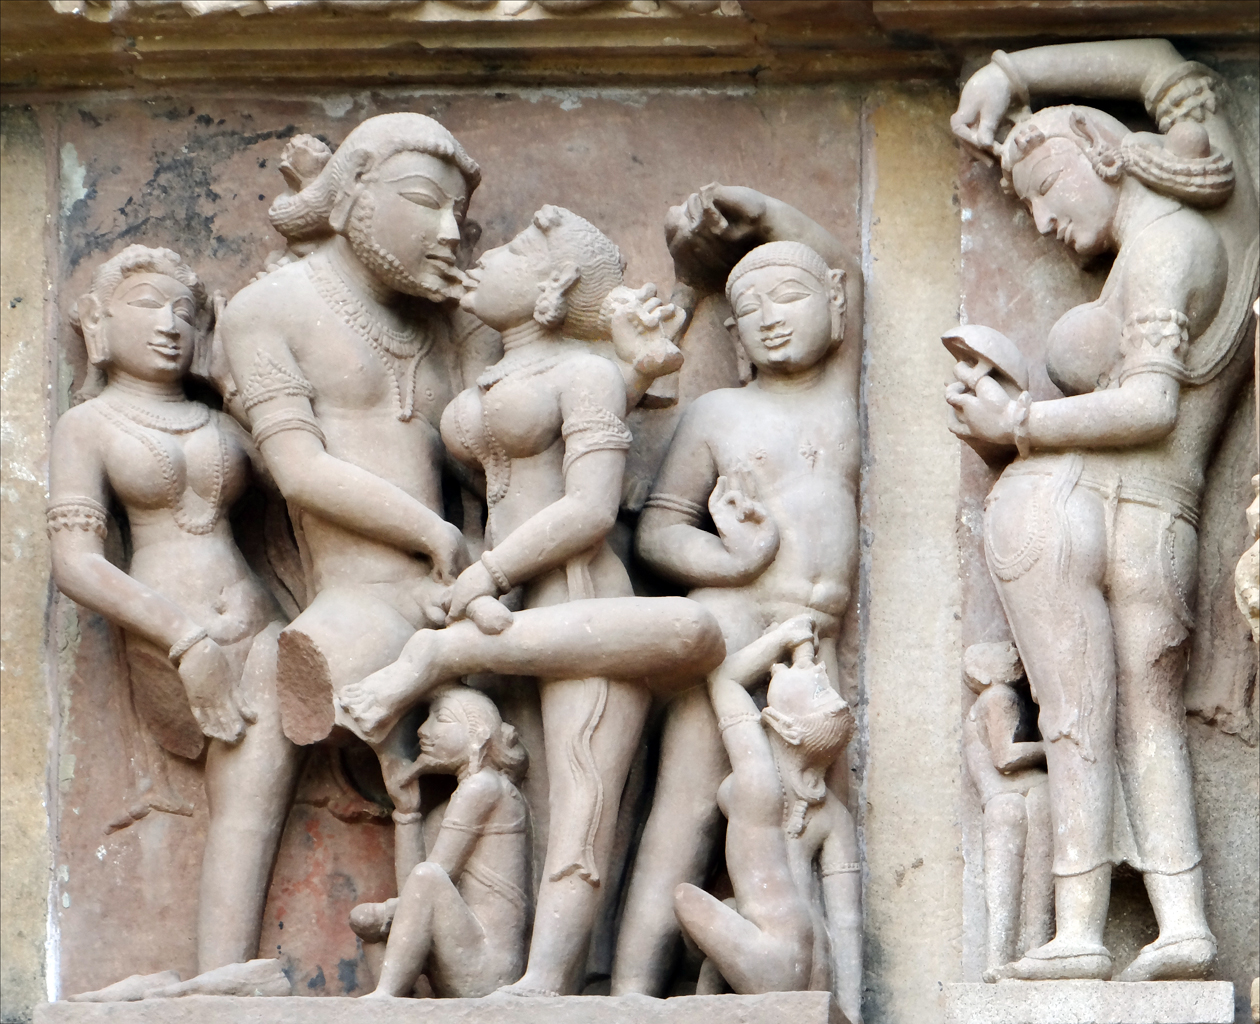 Laxman temple in Khajuraho. Credit: Jean-Pierre Dalbéra/flickr